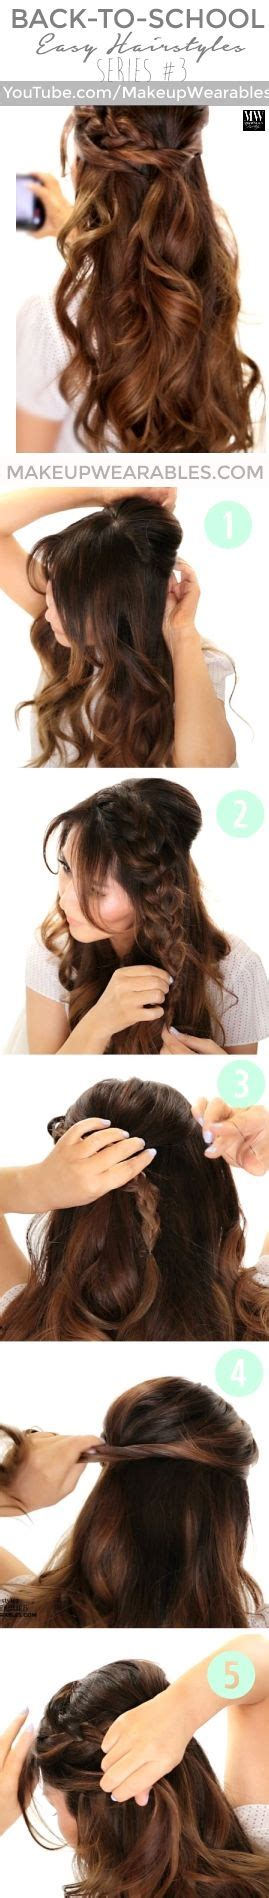 3 totally easy back to school hairstyles hair tutorial t a n g l e d picmia